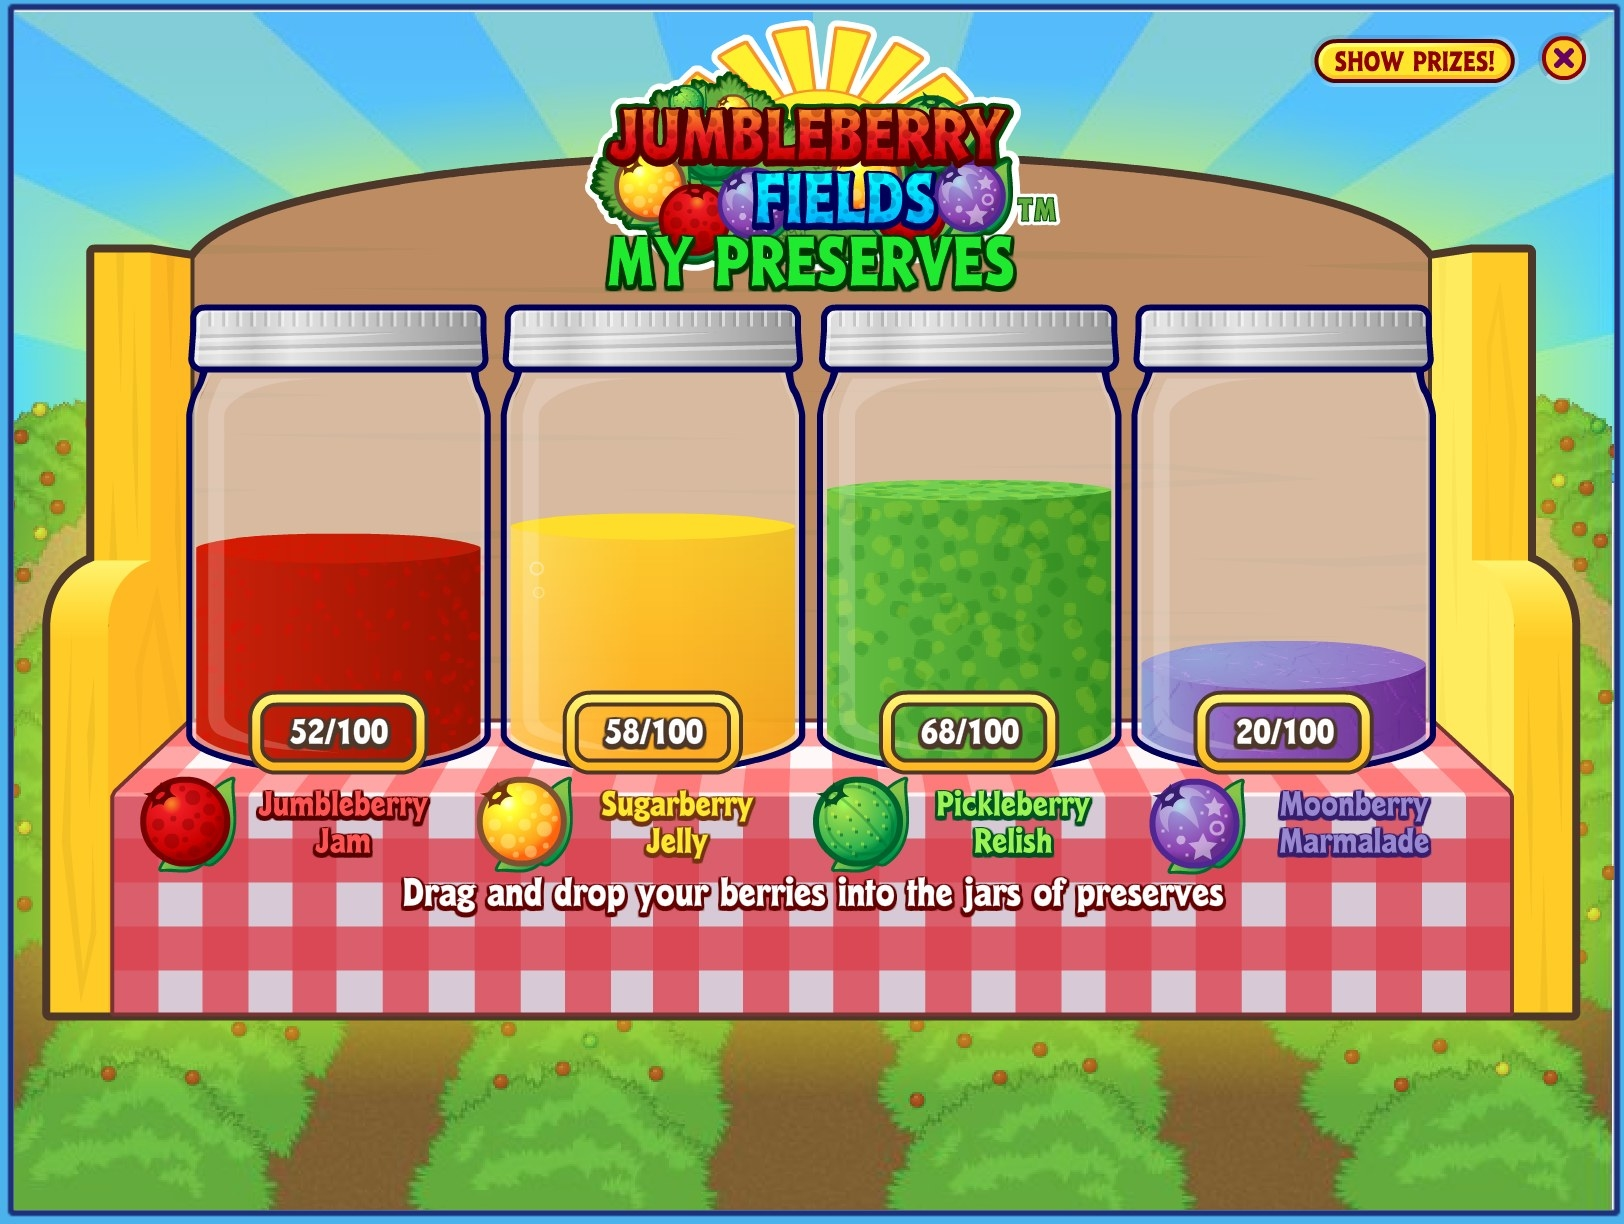 A screenshot of Jumbleberry Fields preserves, which shows the player has 52/100 Jumbleberries, 58/100 Sugarberries, 68/100 Pickleberries, and 20/100 Moonberries